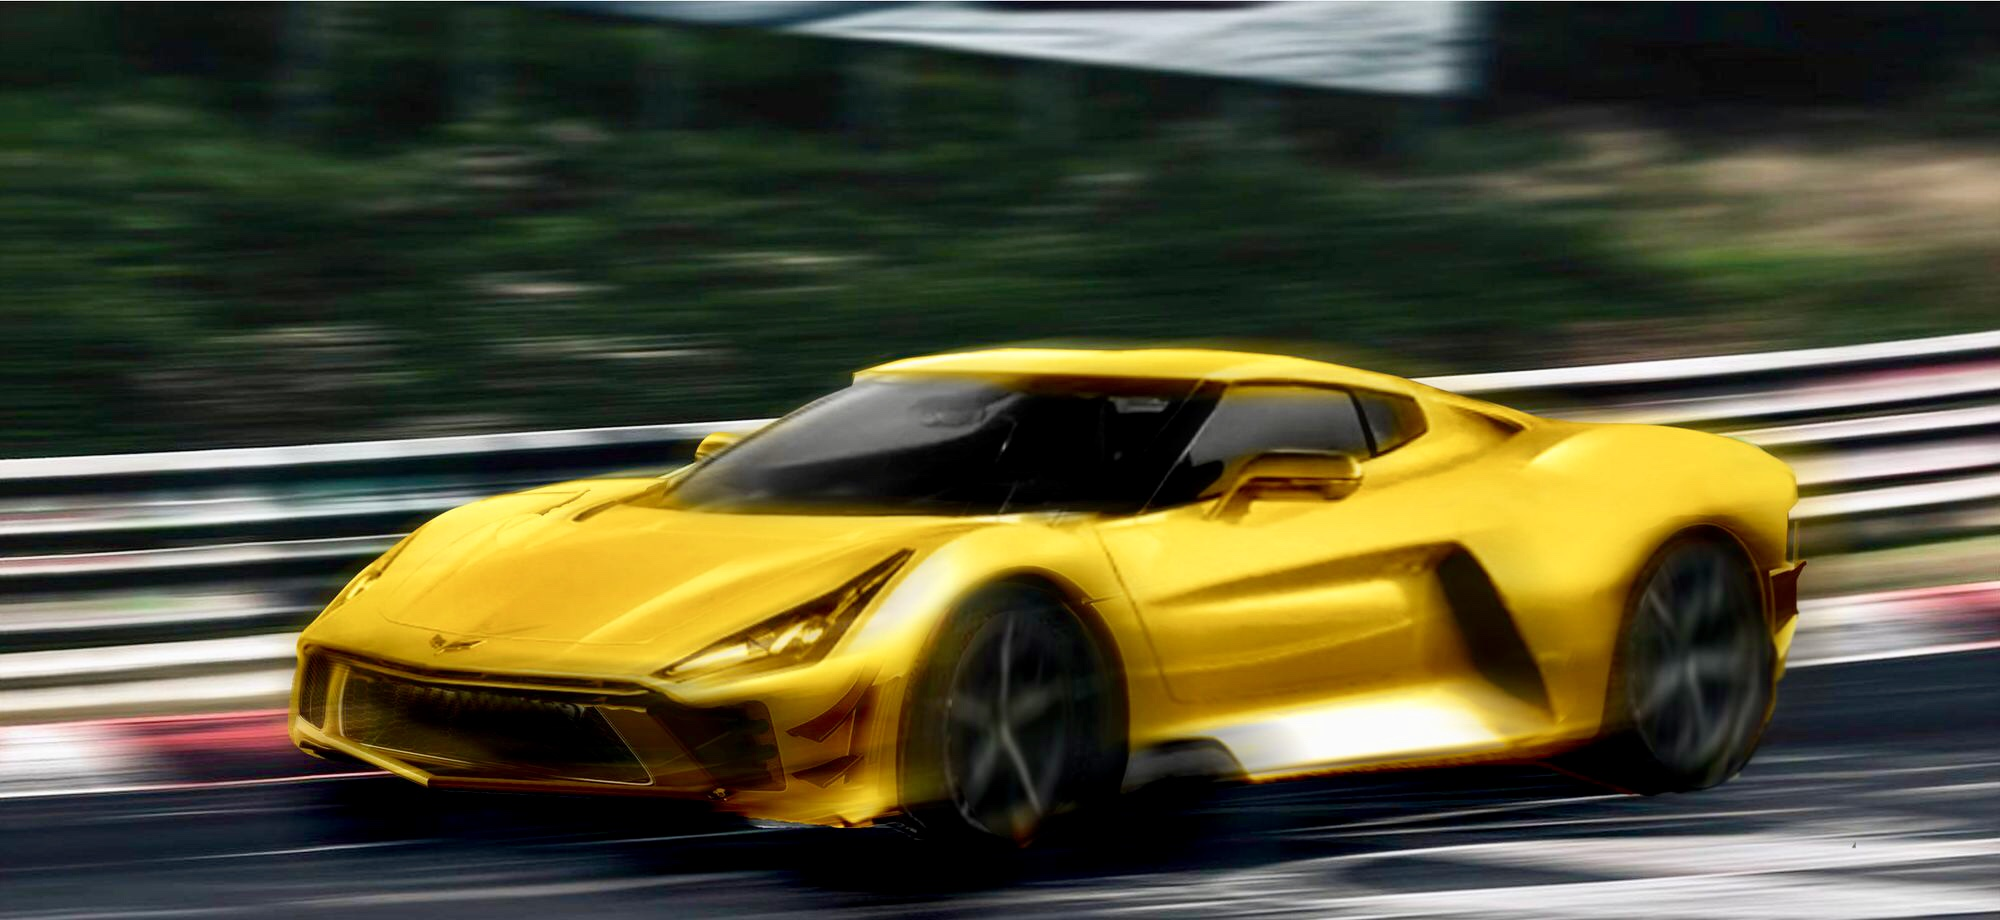 2019 Last C7 Year 2020 Begins The Mid Engine C8 Page 4